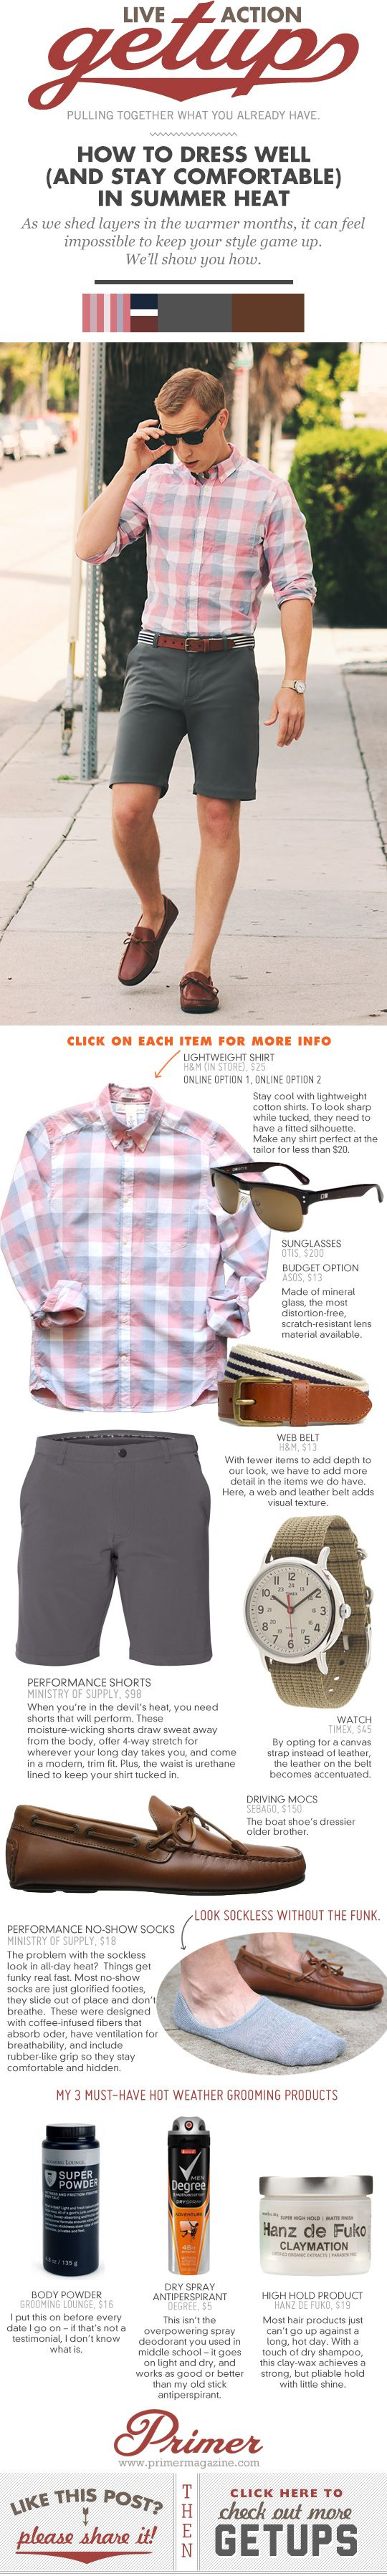 Live-Action Getup: How to Dress Well (and Stay Comfortable) in Summer Heat - Primer